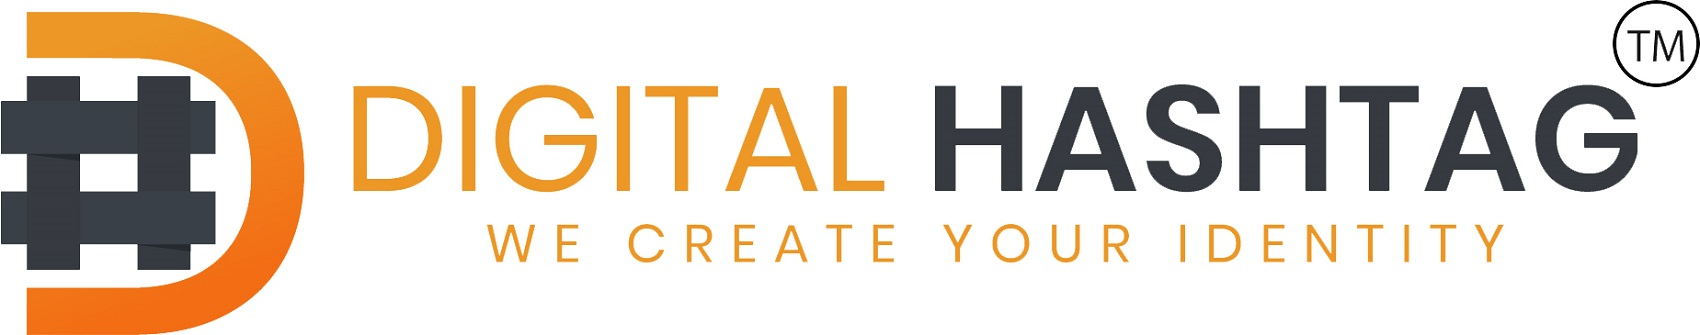 Digital Hashtag - Digital Marketing Agency